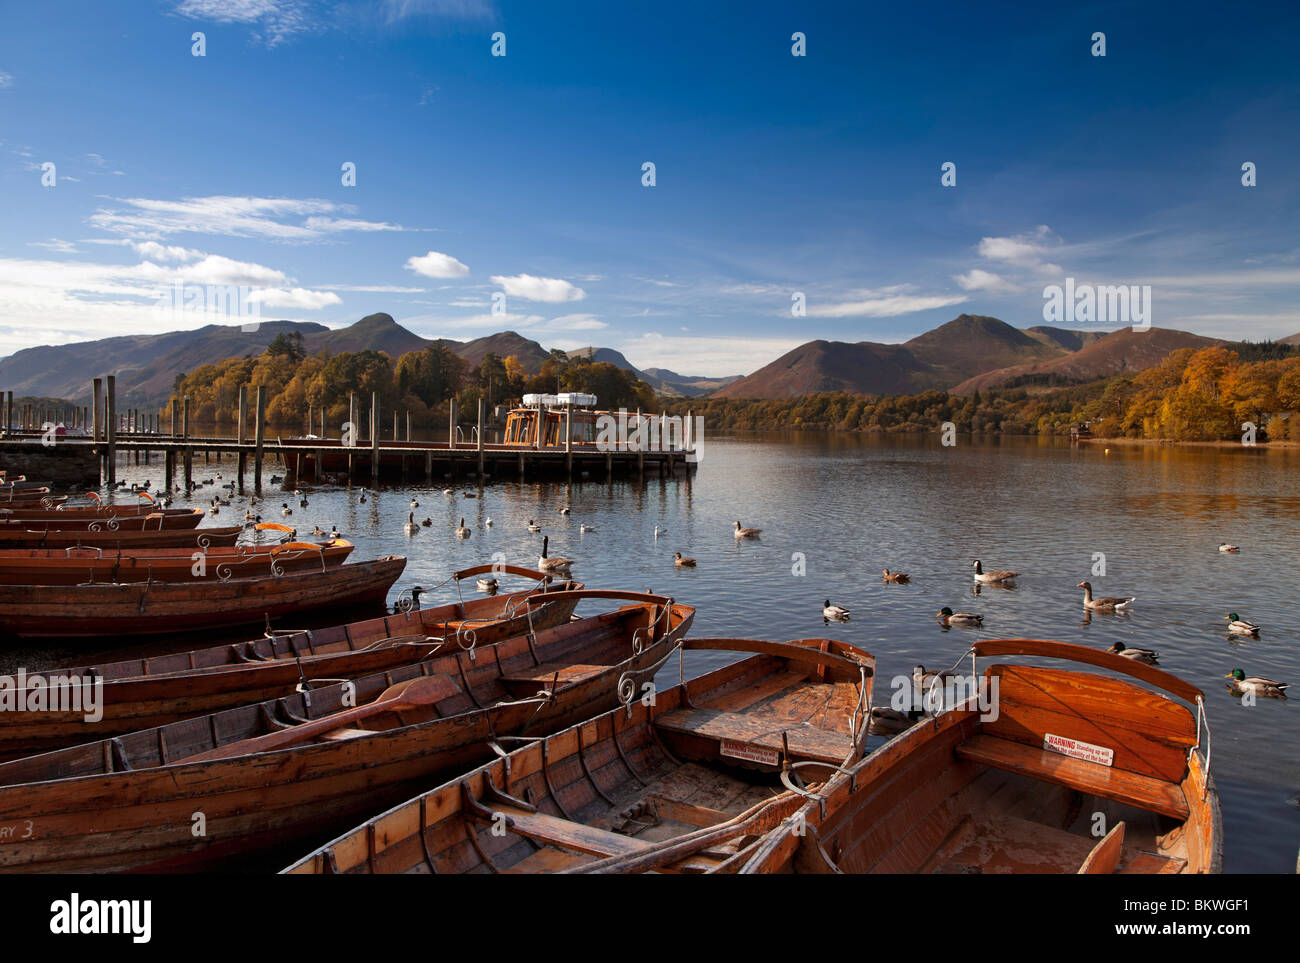 Derwentwater towards Catbells and Causey Pike in autumn, Cumbria, England - Stock Image